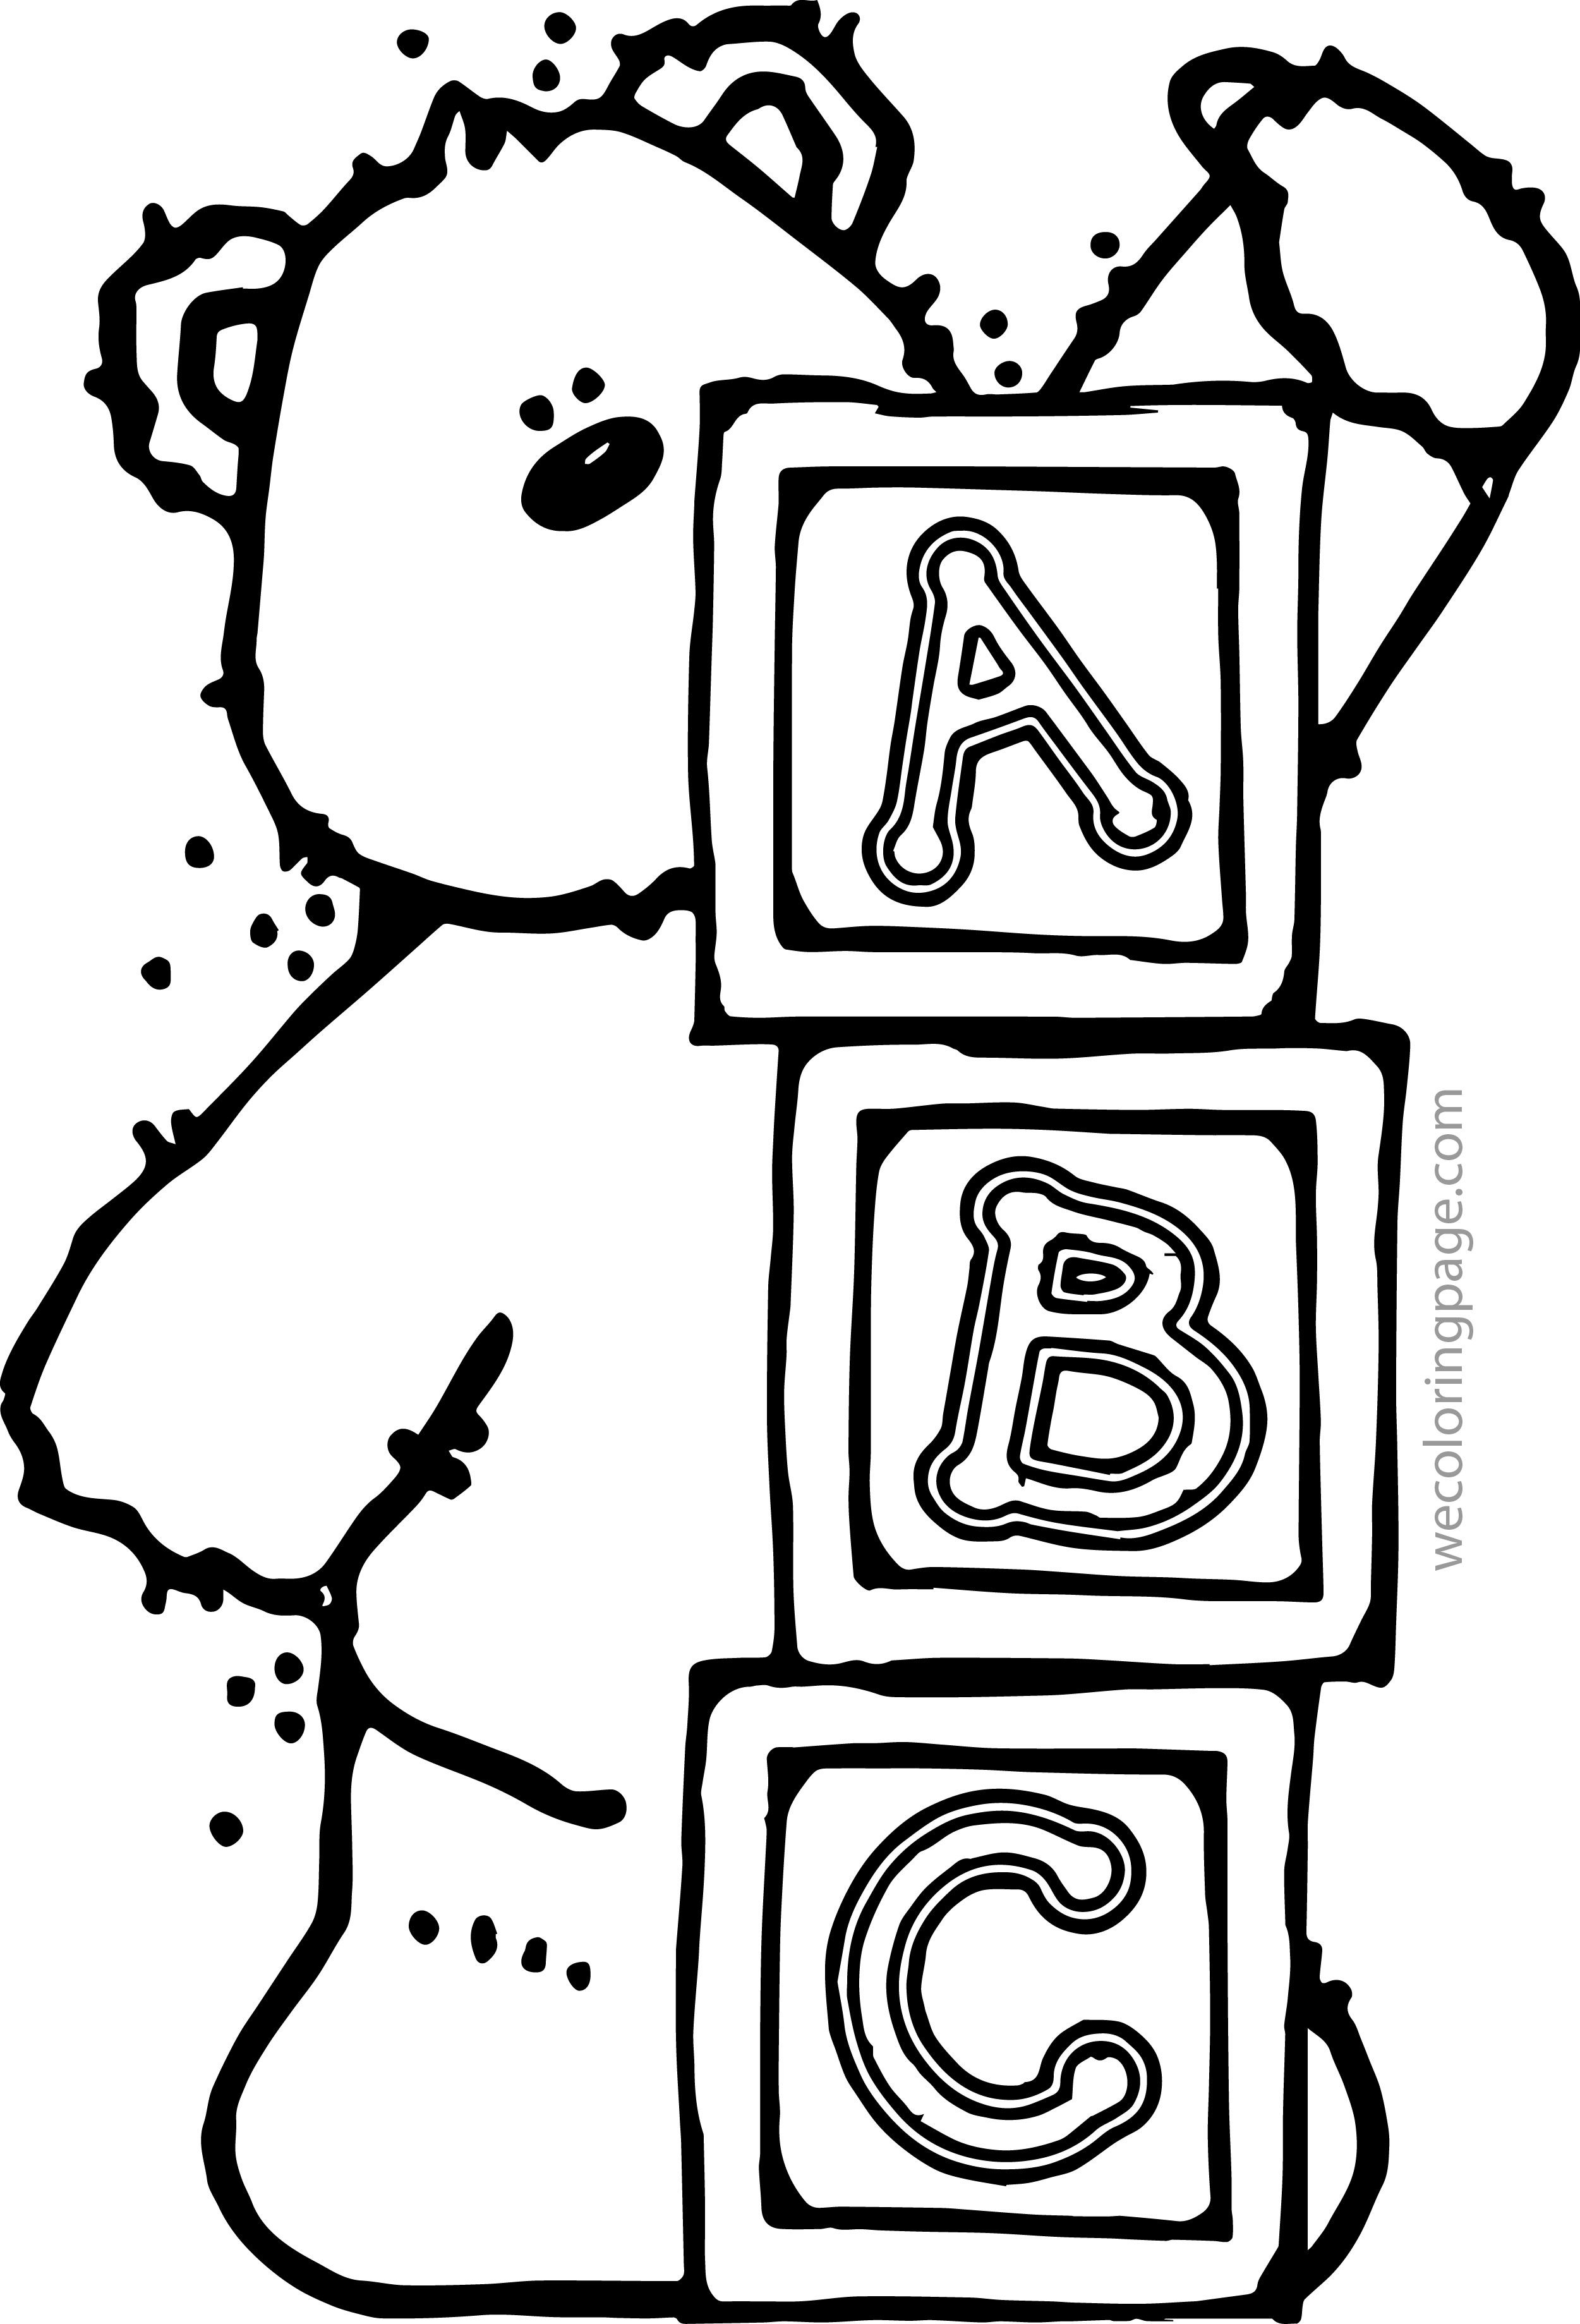 Abc Coloring Pages Wecoloringpage Abc Coloring Pages Abc Coloring Animal Coloring Pages